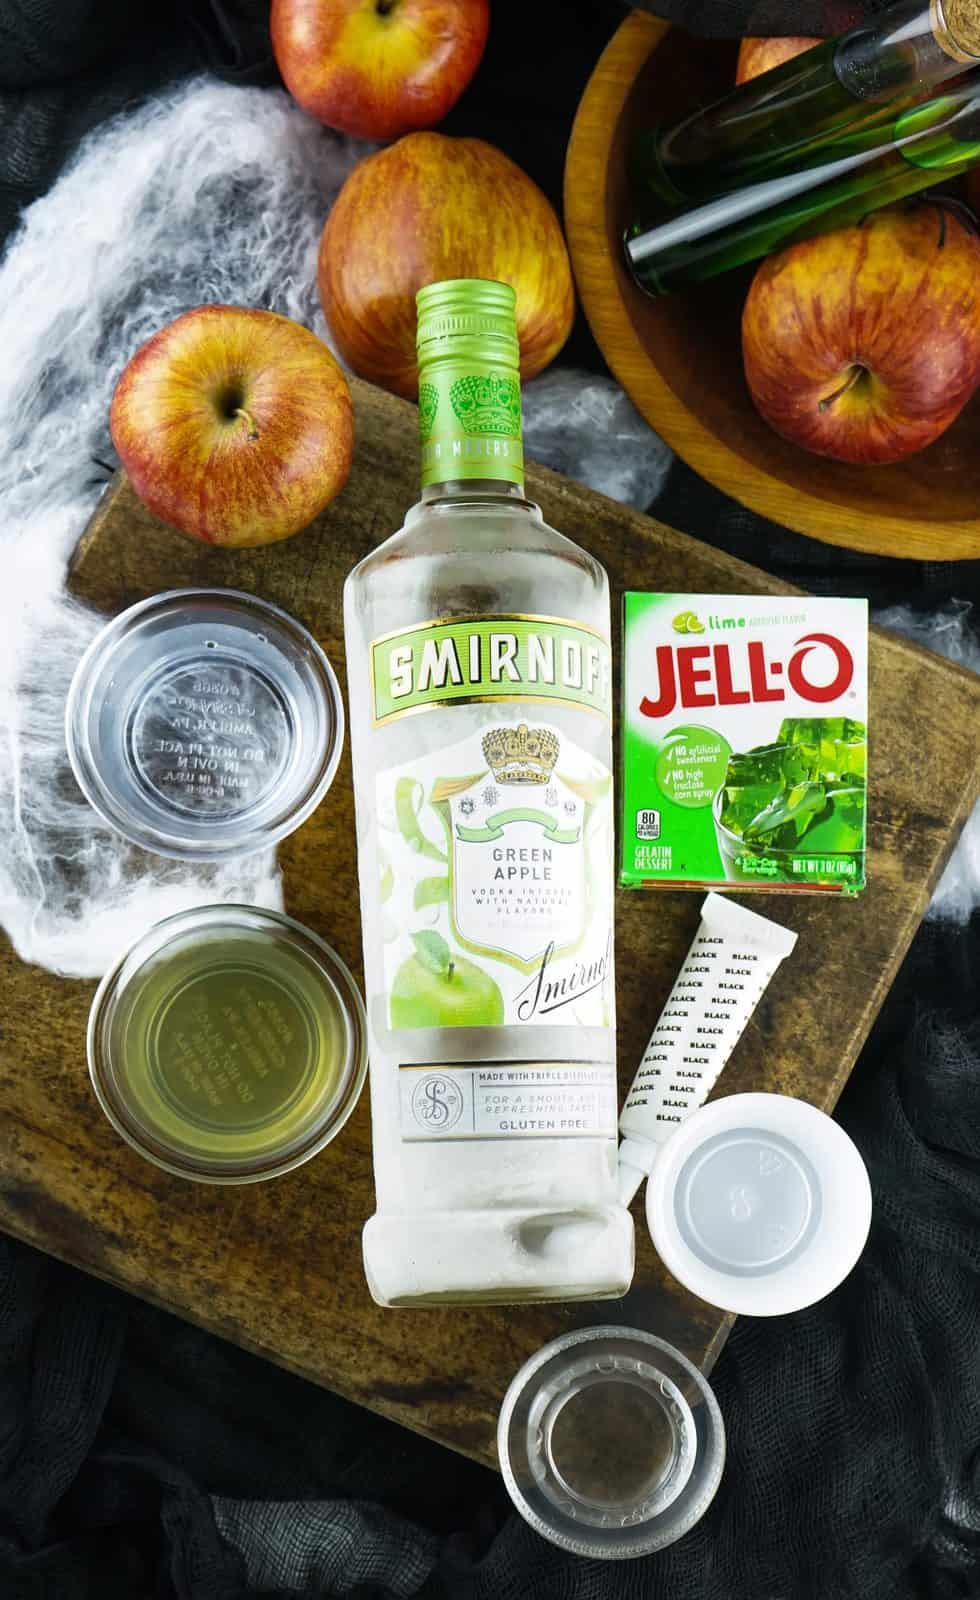 Ingredients needed: ime jell-o, boiling water, green apple vodka, lime juice and black gel food coloring.